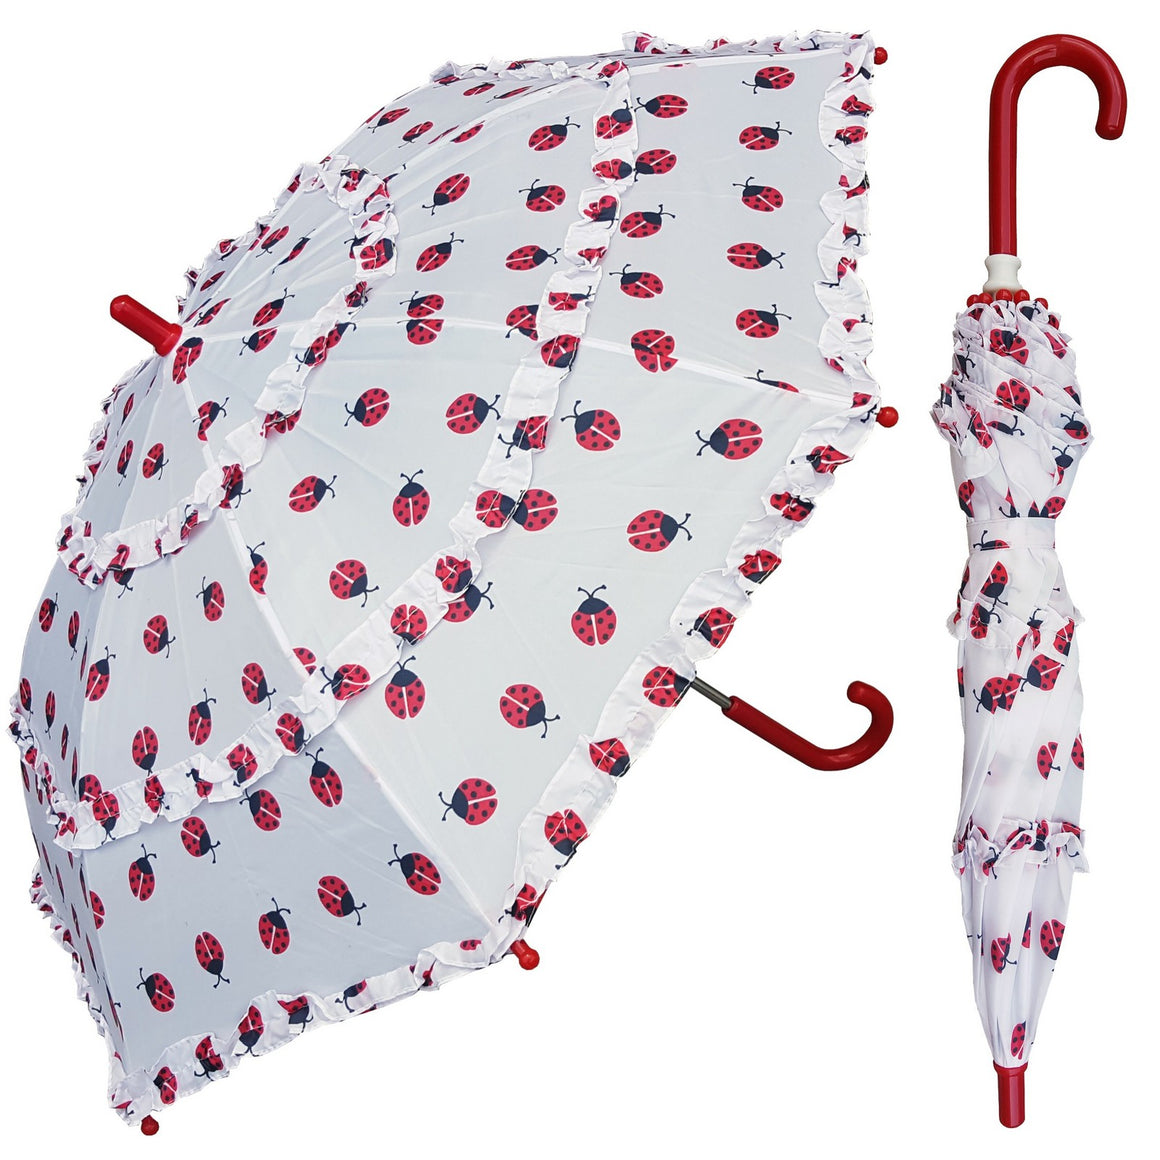 Wholesale Ladybug Ruffle Children's Umbrella